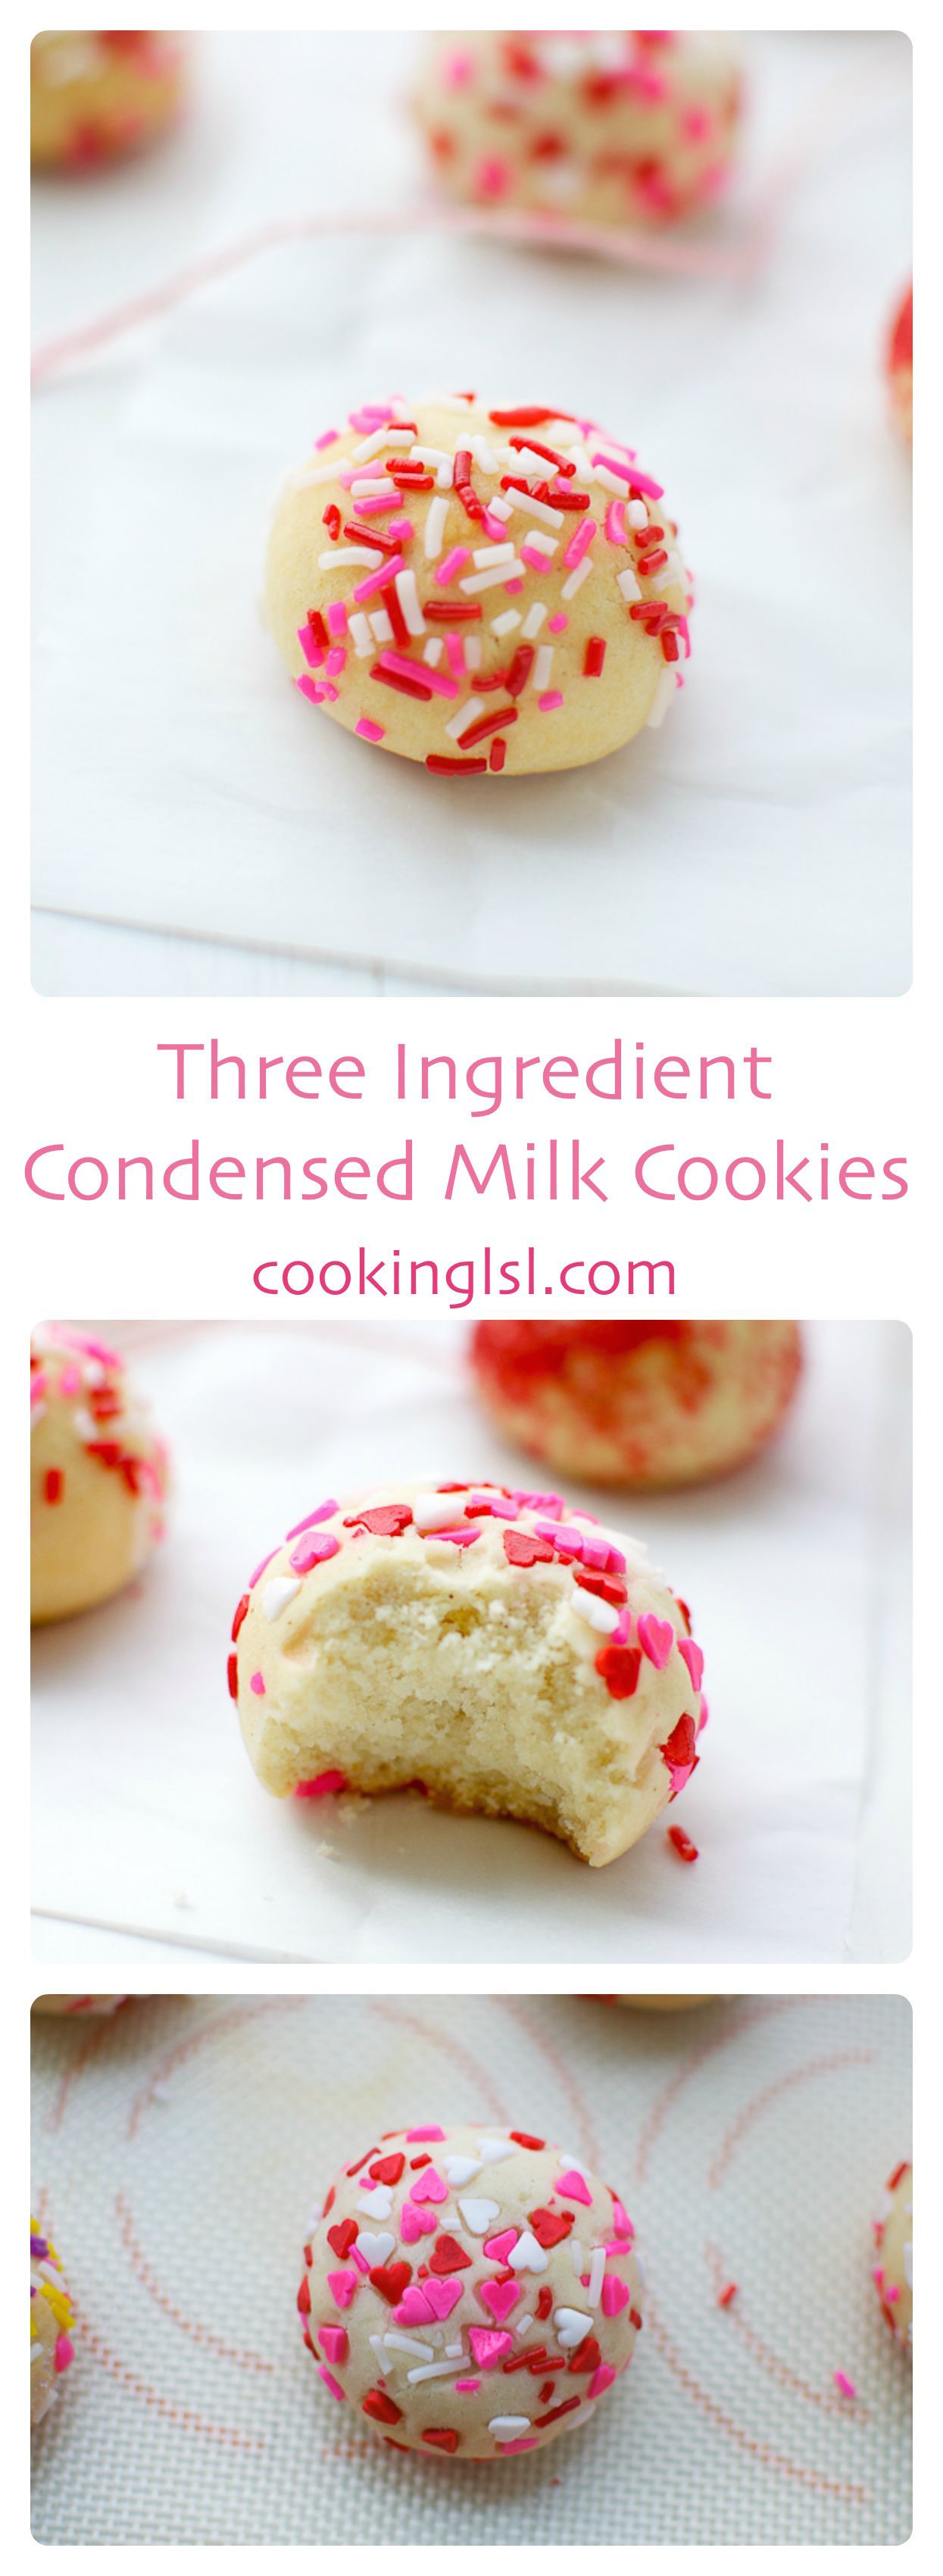 Condensed Milk Cookies Recipe Cookies Cookies More Cookies Condensed Milk Cookies Three Ingredient Cookies Condensed Milk Recipes